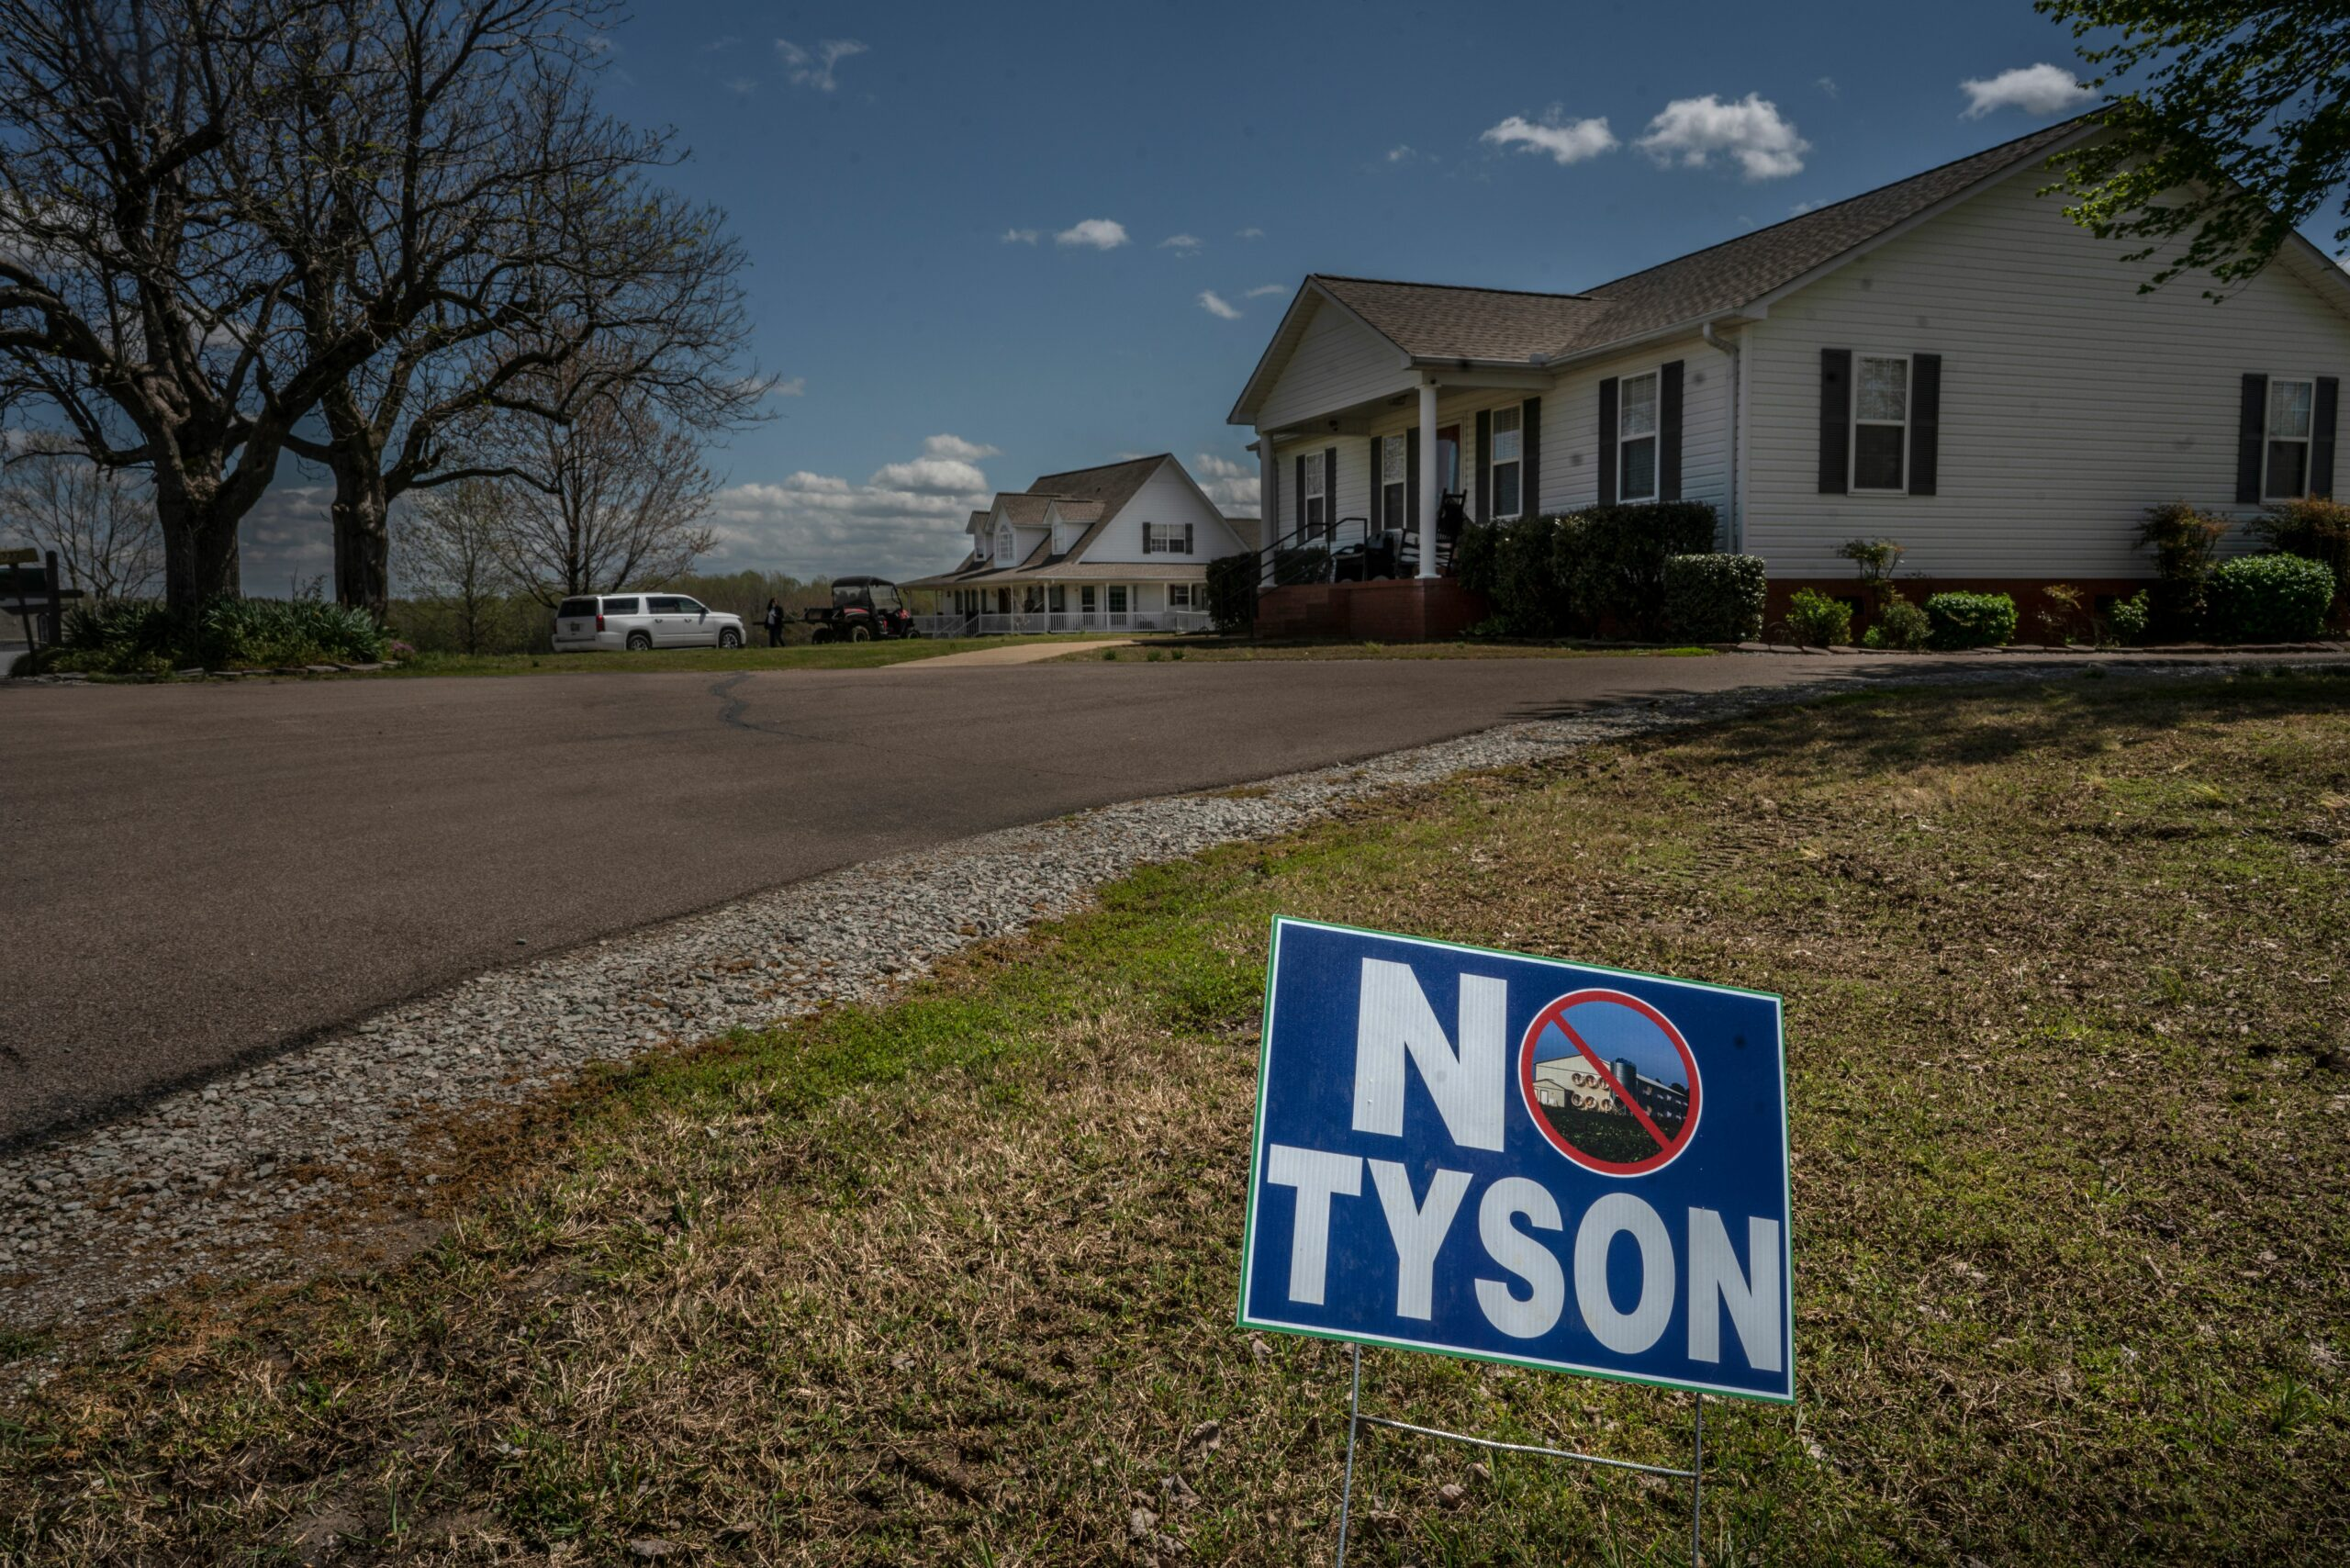 A 'No Tyson' sign is on the street when Taylor and other farmers live who are leery of Tyson. (Photo: John Partipilo)